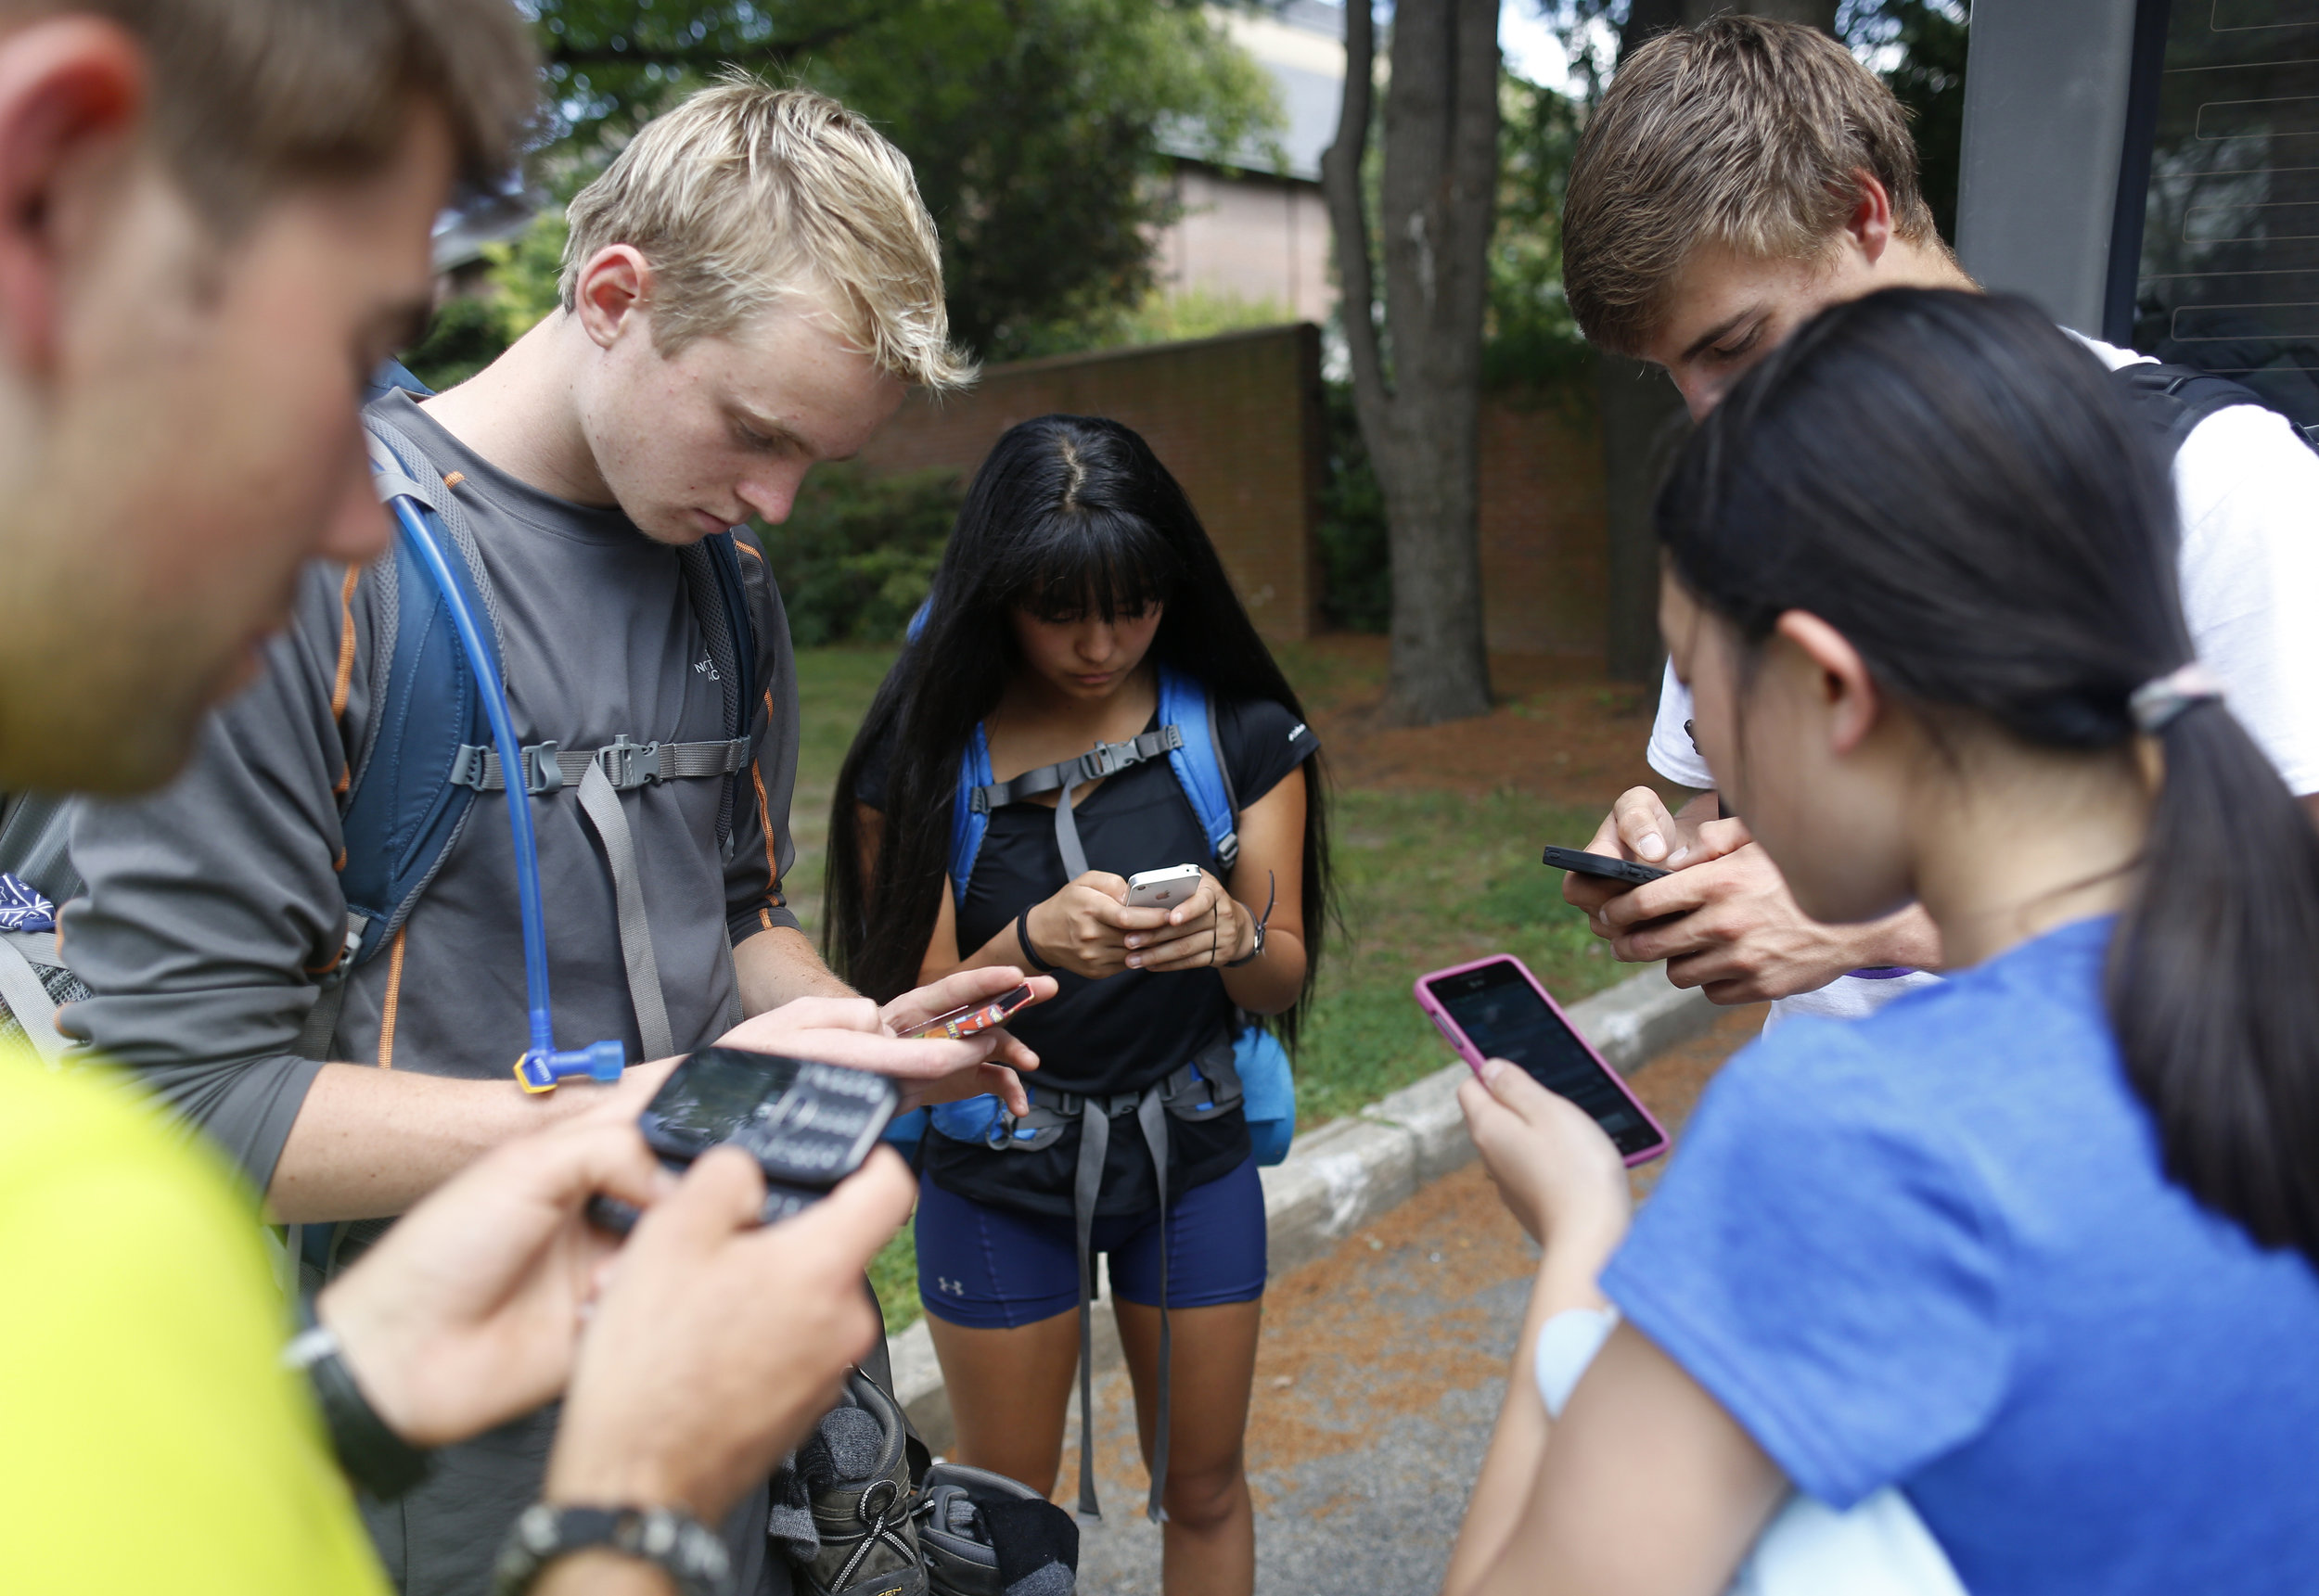 The freshmen exchange numbers upon getting their phones back at the conclusion of the trip.